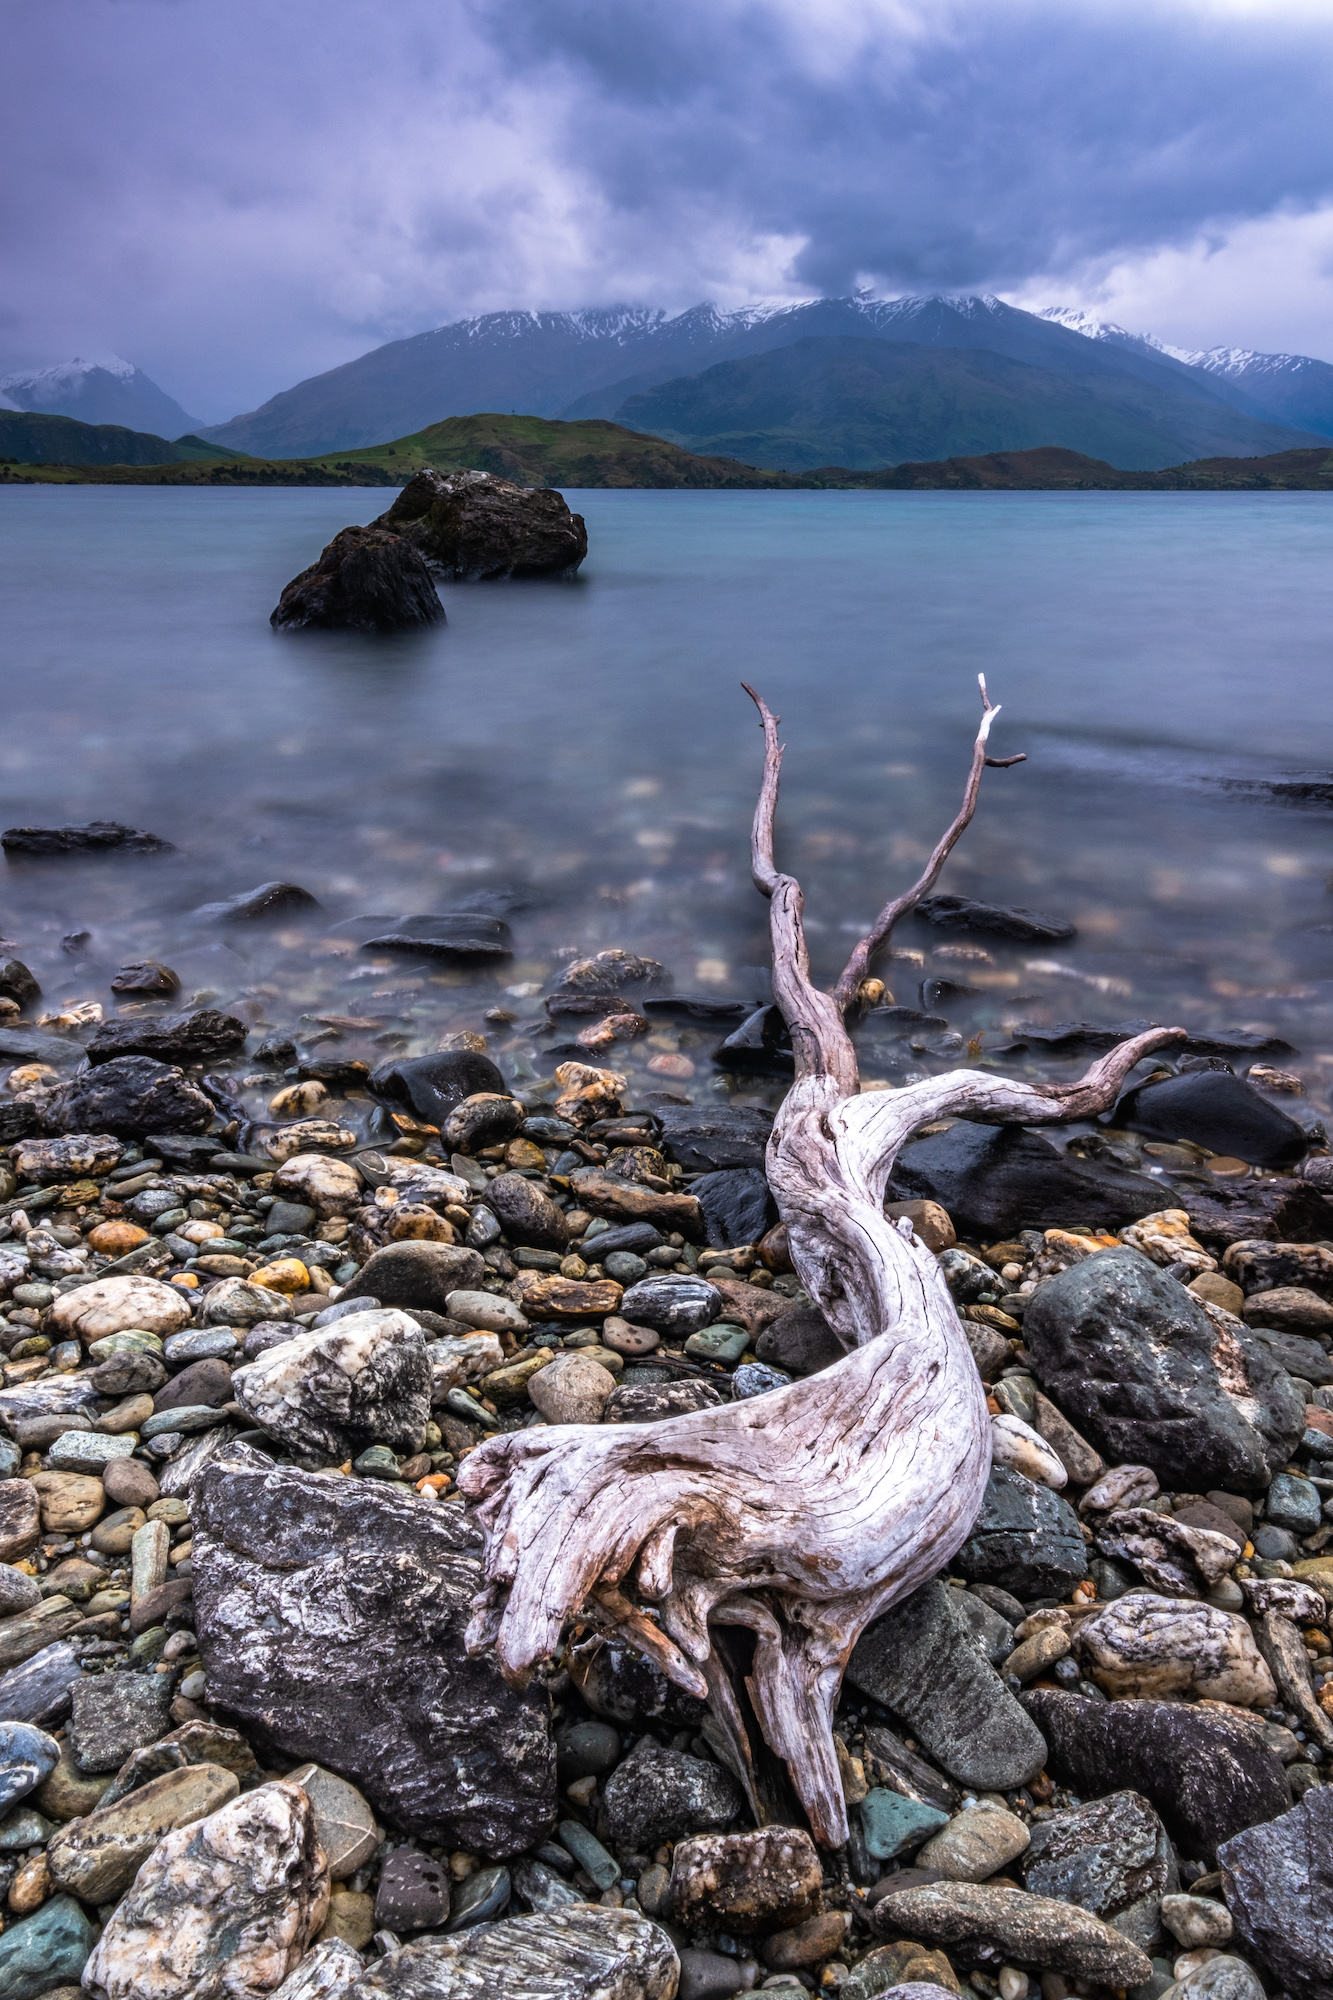 Washed up driftwood and pebbles make for a textured foreground as The Remakables are almost swallowed by low clouds; Queenstown, New Zealand